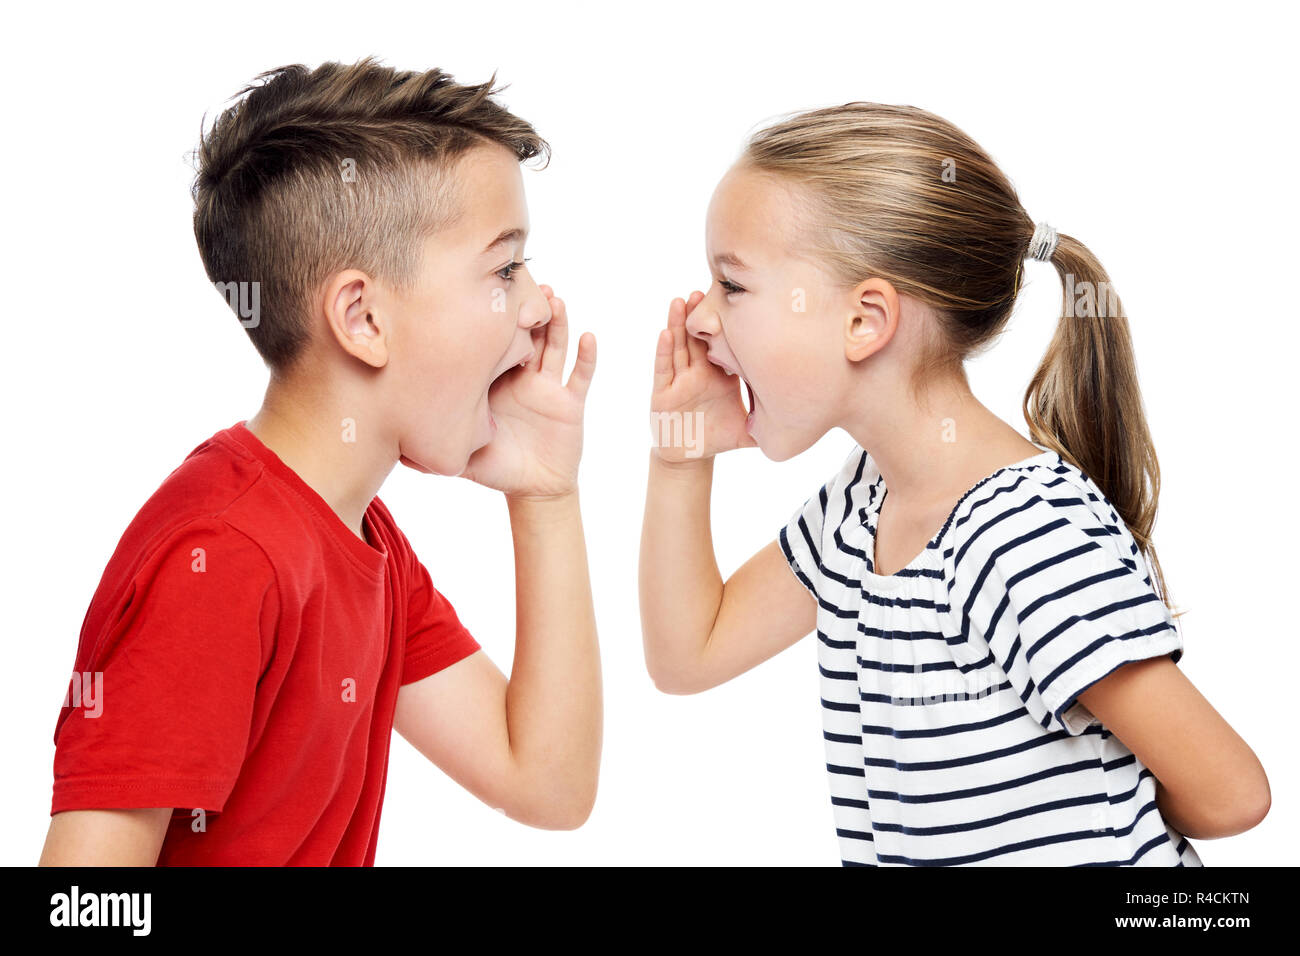 Young children facing eachother and shouting. Speech therapy concept over white background. - Stock Image